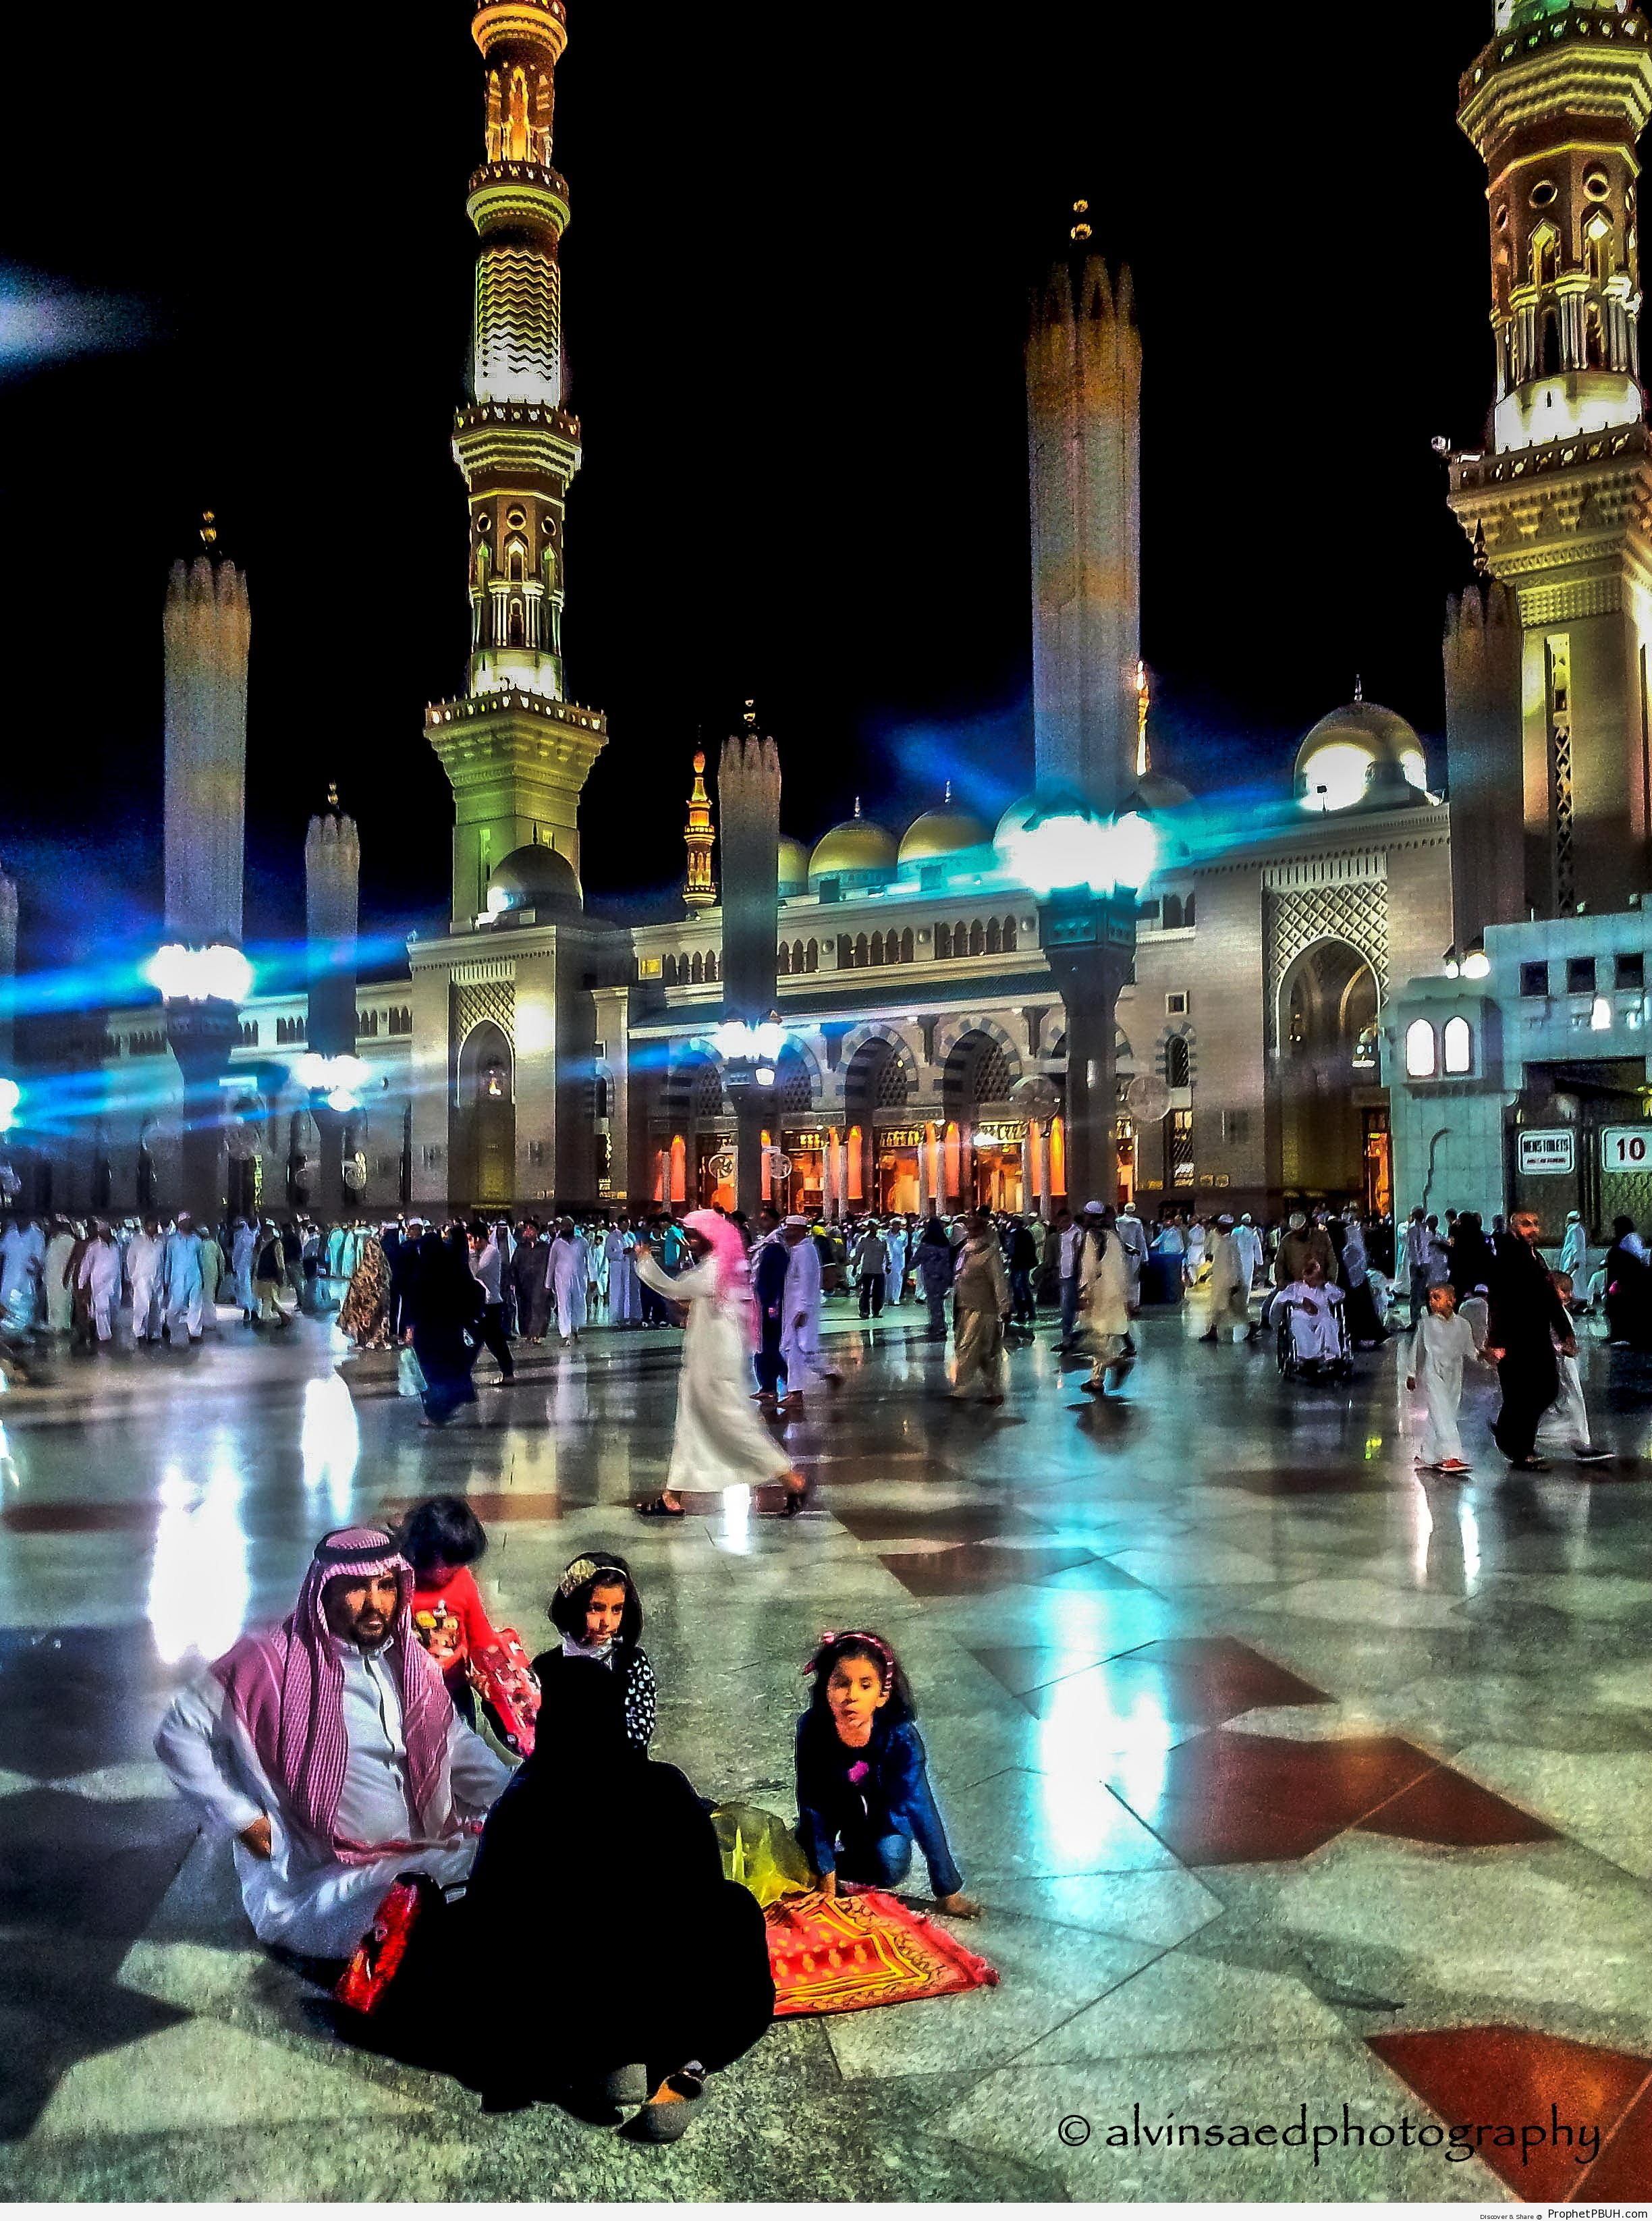 Family at al-Masjid an-Nabawi - Al-Masjid an-Nabawi (The Prophets Mosque) in Madinah, Saudi Arabia -Picture